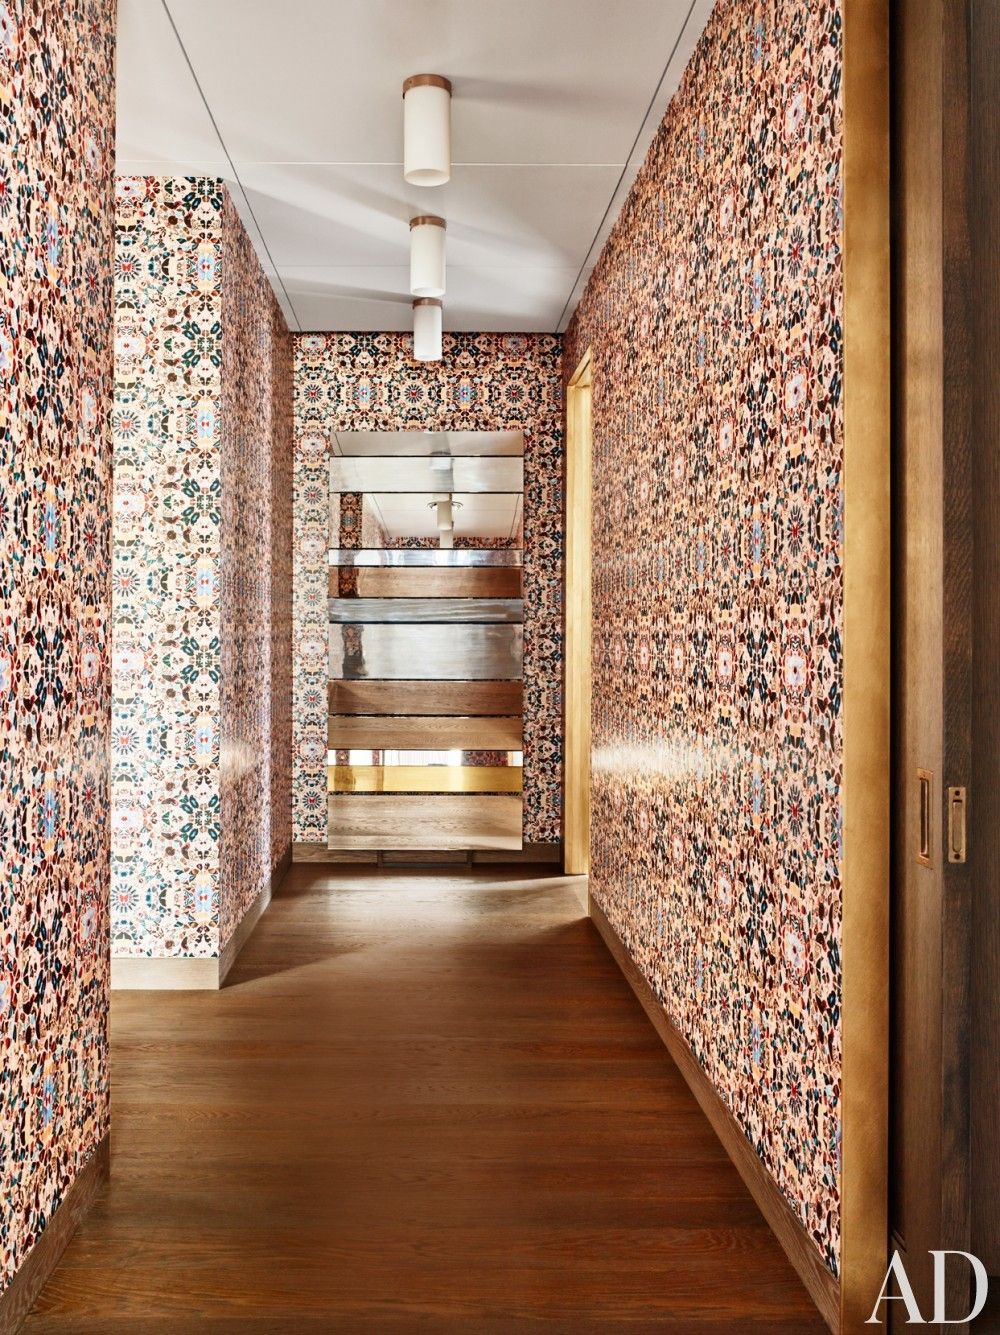 Hallway and stairs wallpaper  Damien Hirst wallpaper lines a hallway by Dufner Heighes in New York